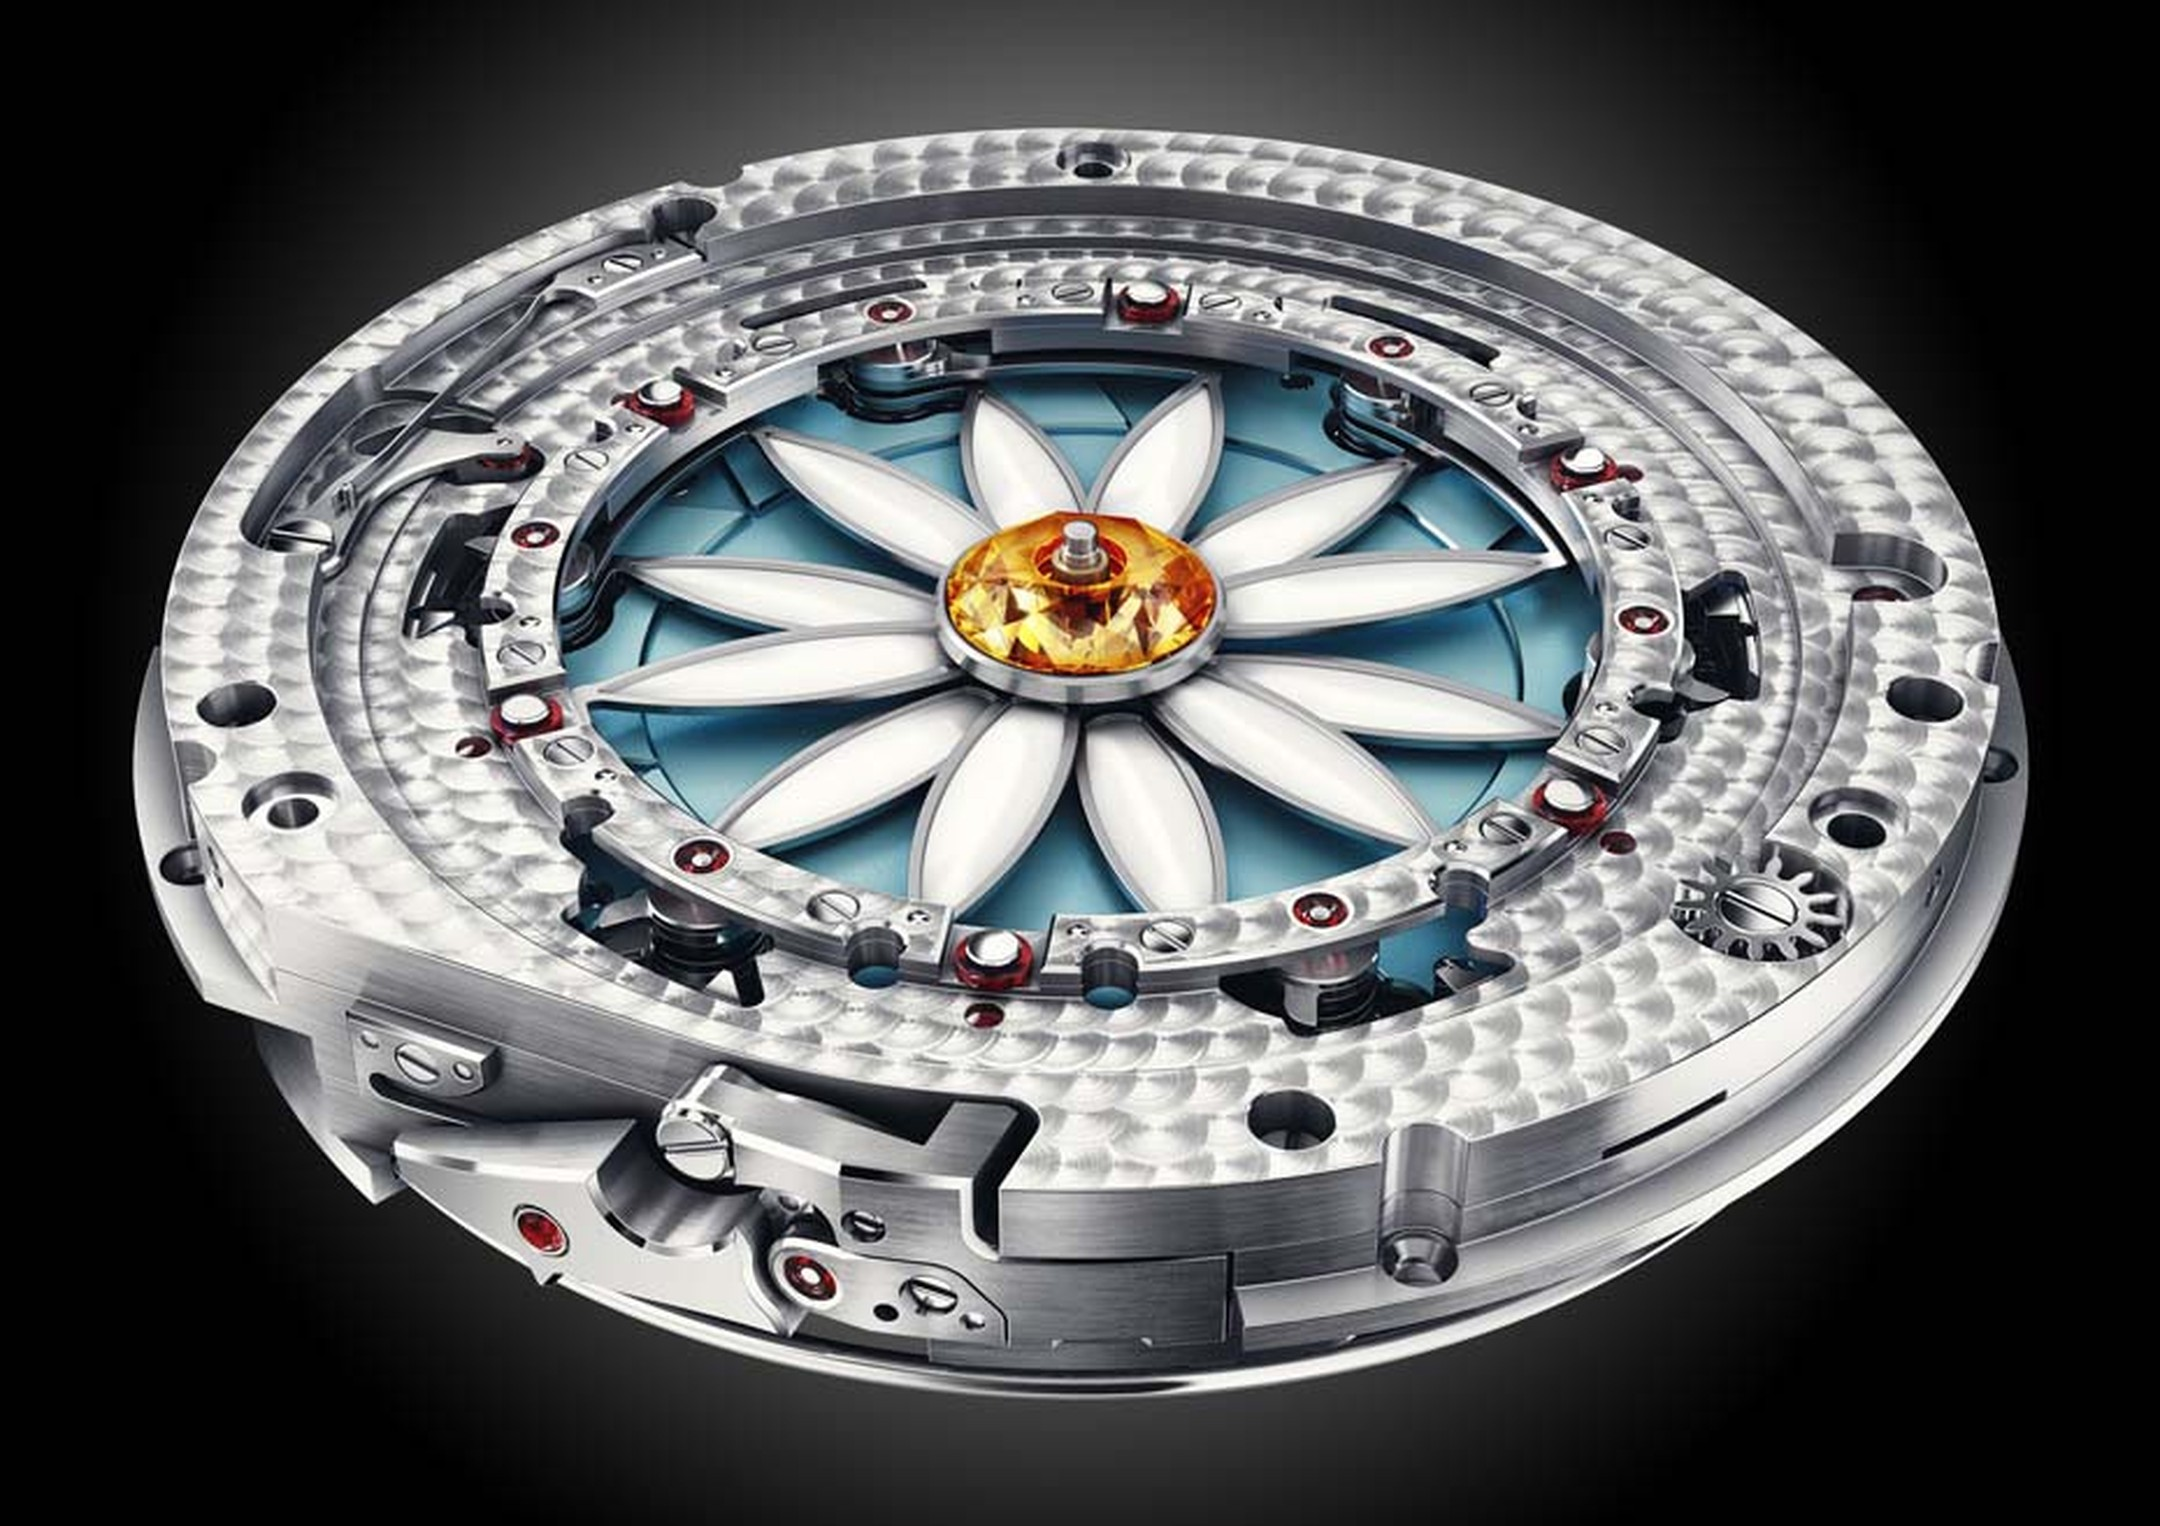 Christophe Claret's Margot watch features 731 individual components and twin barrels for 72 hours of power reserve.